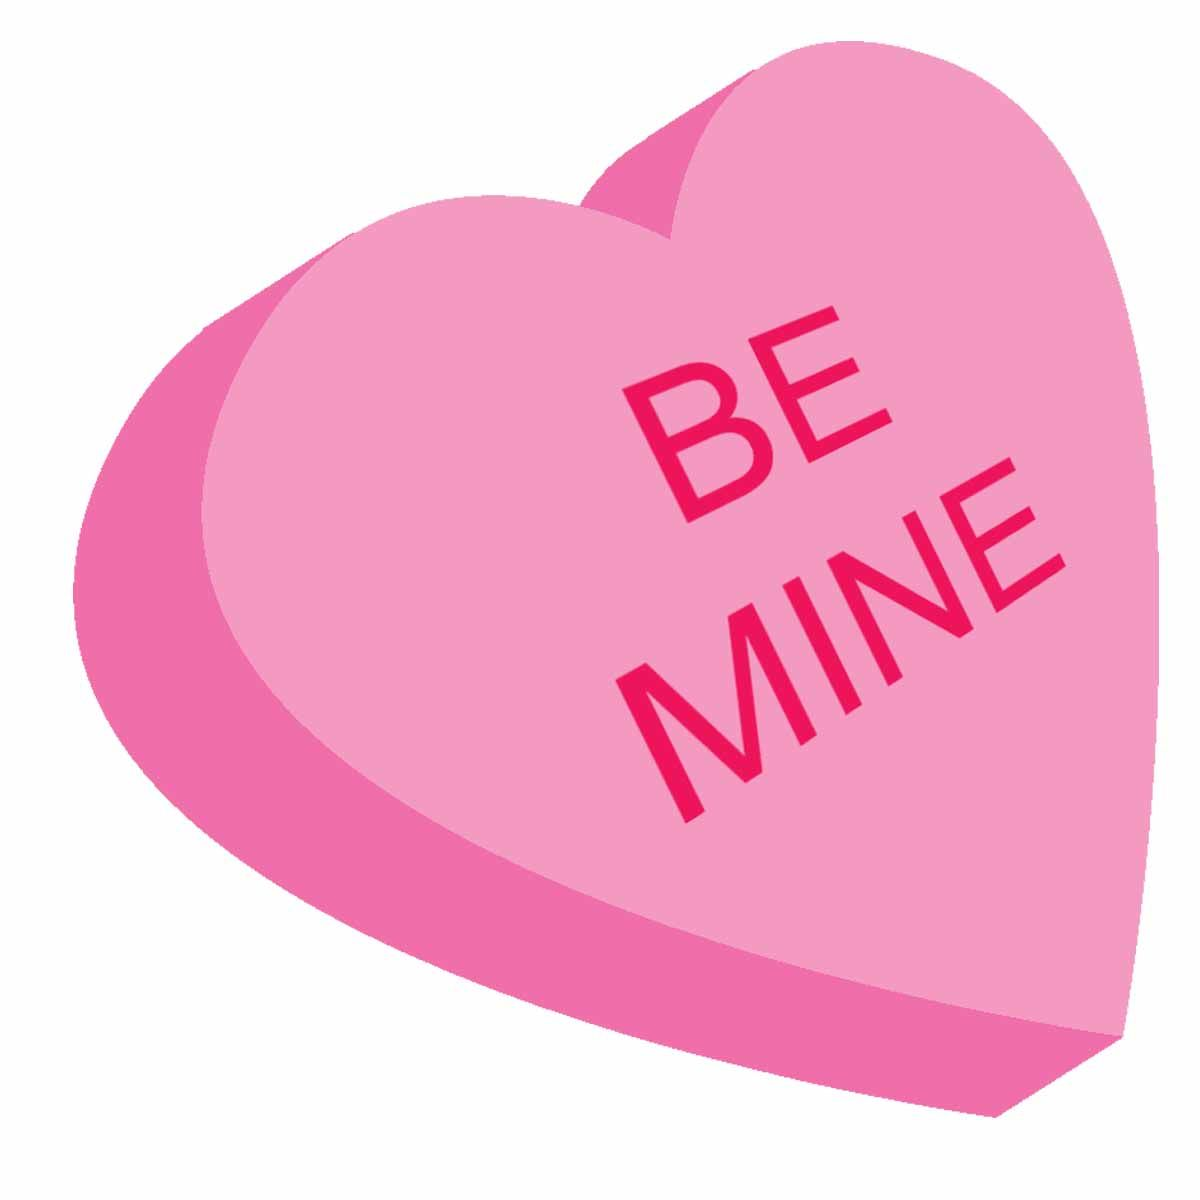 Will you be my Valentine? | quotes and things | Pinterest | Pink ...